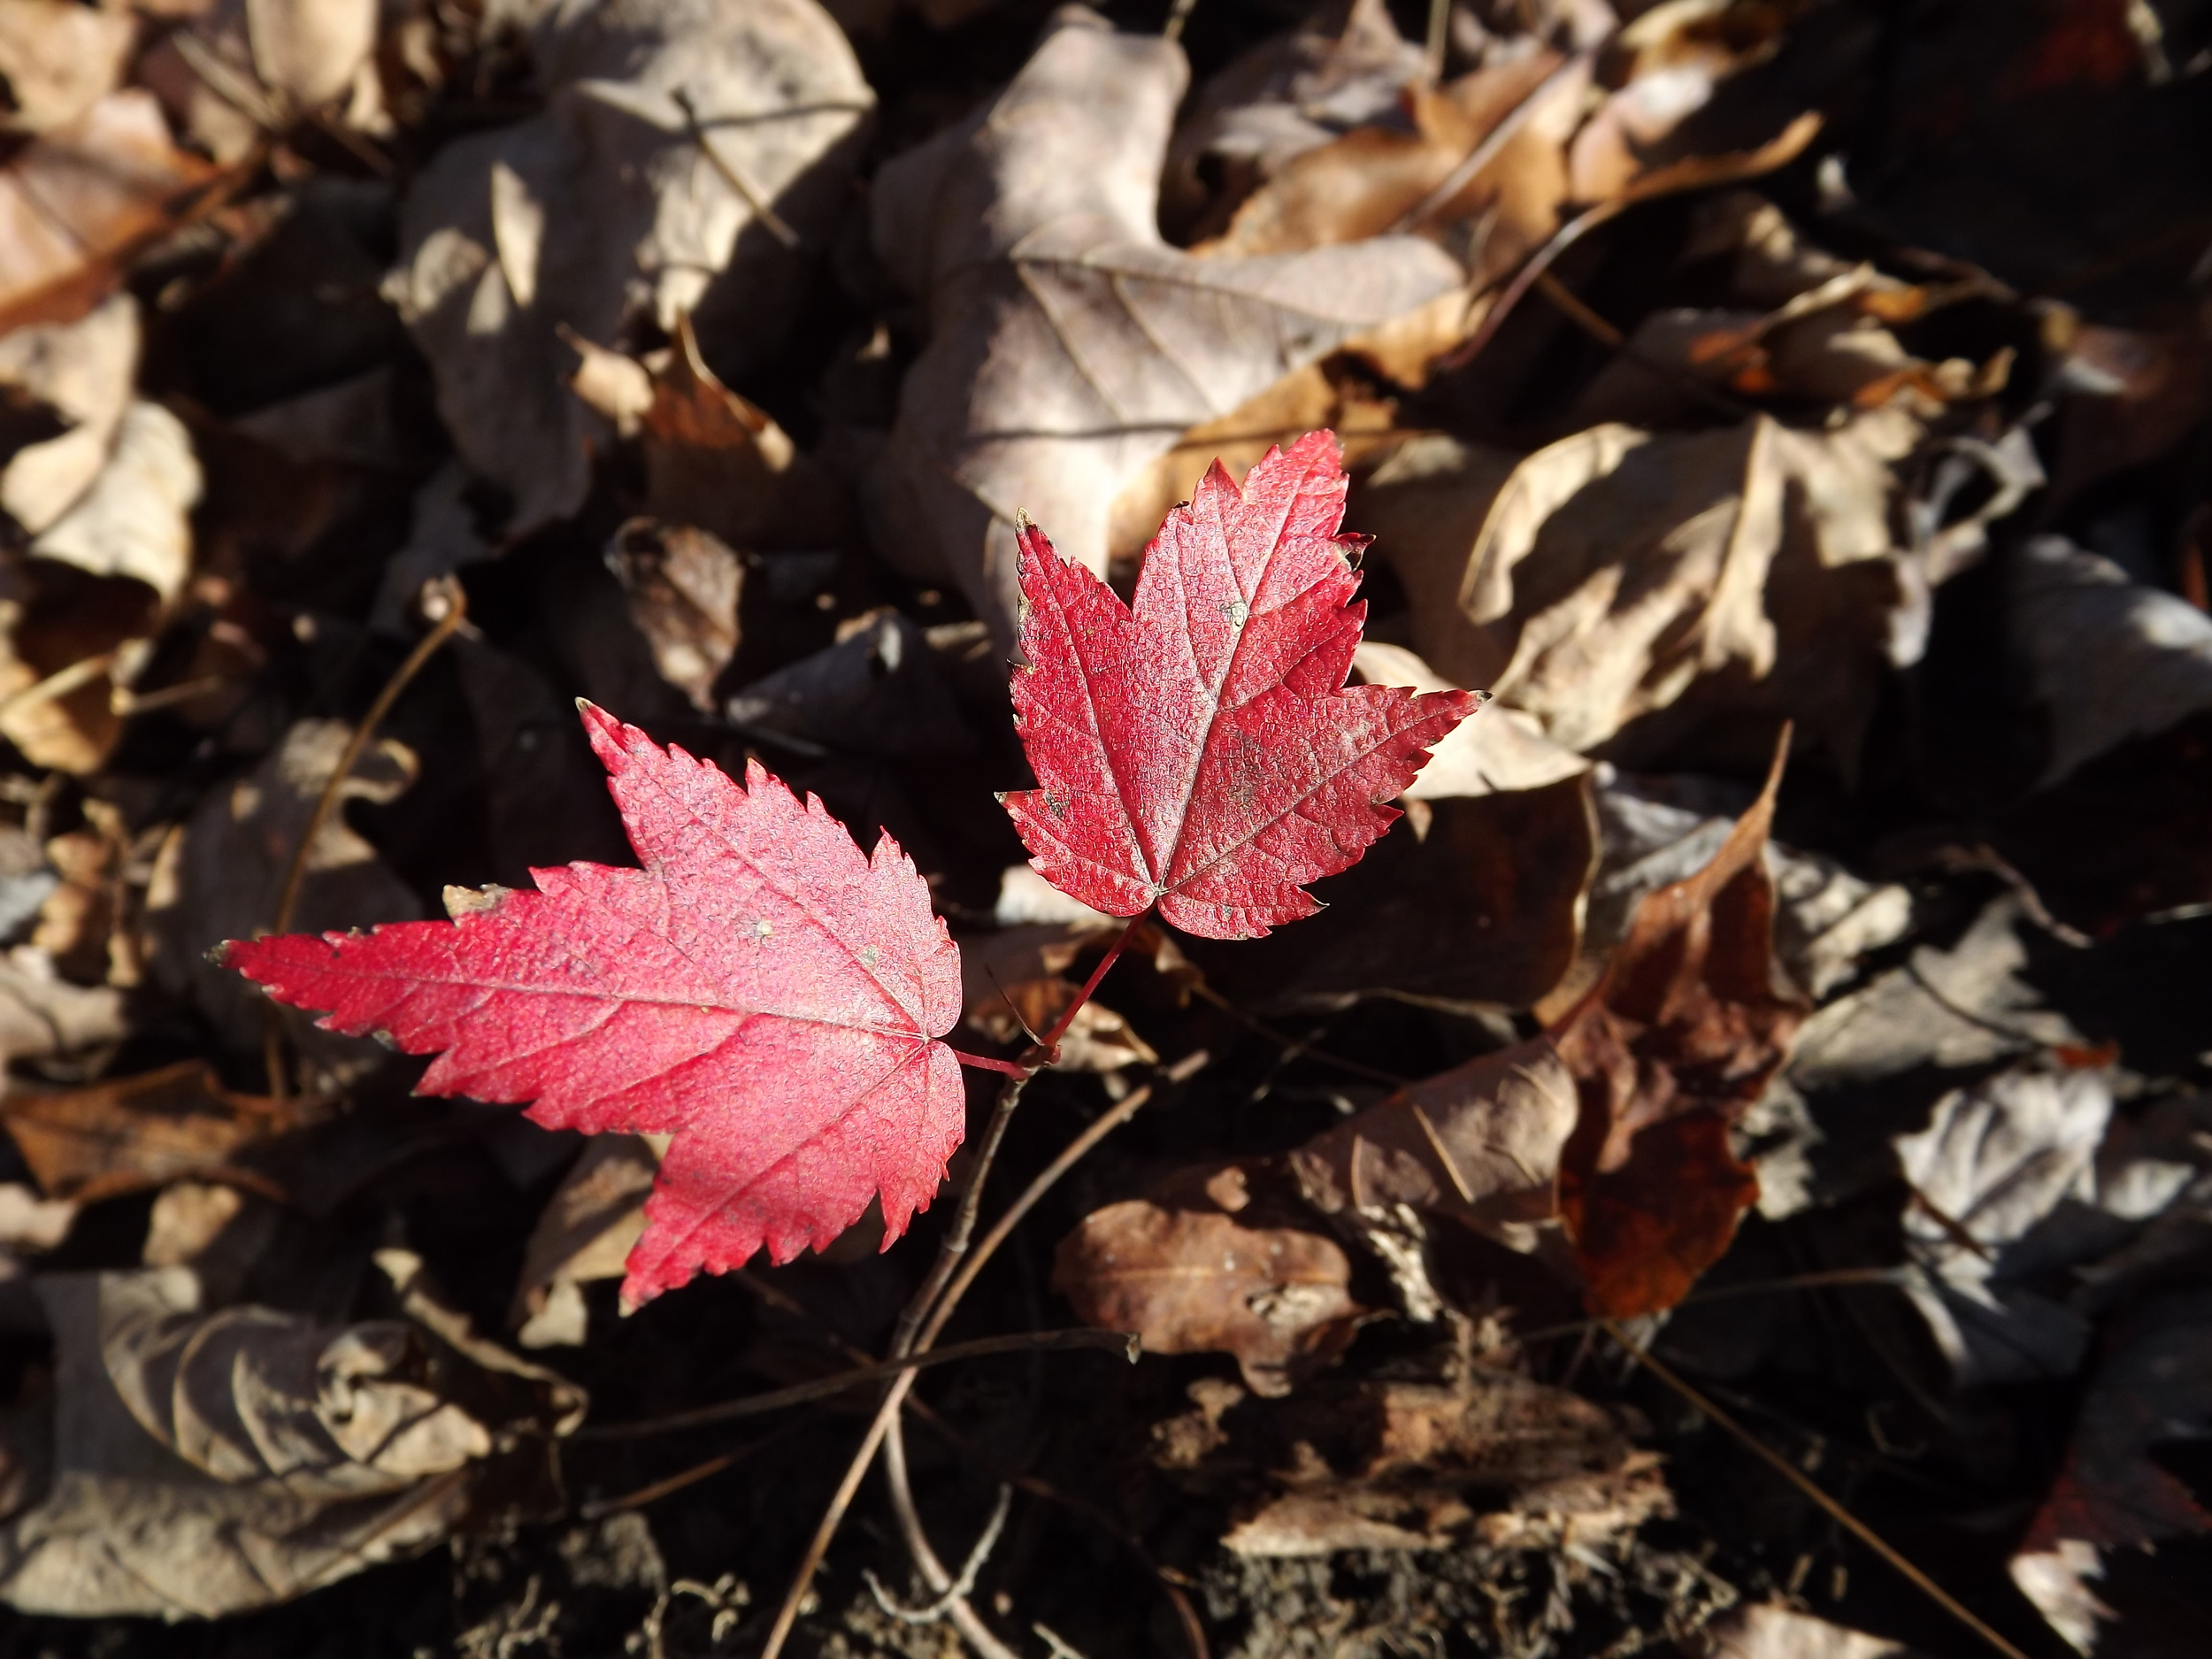 Red Maple ( Acer rubrum ) - Even though this Maple was incredibly small, its red leaves really stood out against the brown of the forest floor and I spotted it from a good distance away. Given it size, I would suspect it's one of this year's seedlings, so it's got a tough road ahead if it's going to survive in the established old growth forest where I found it.